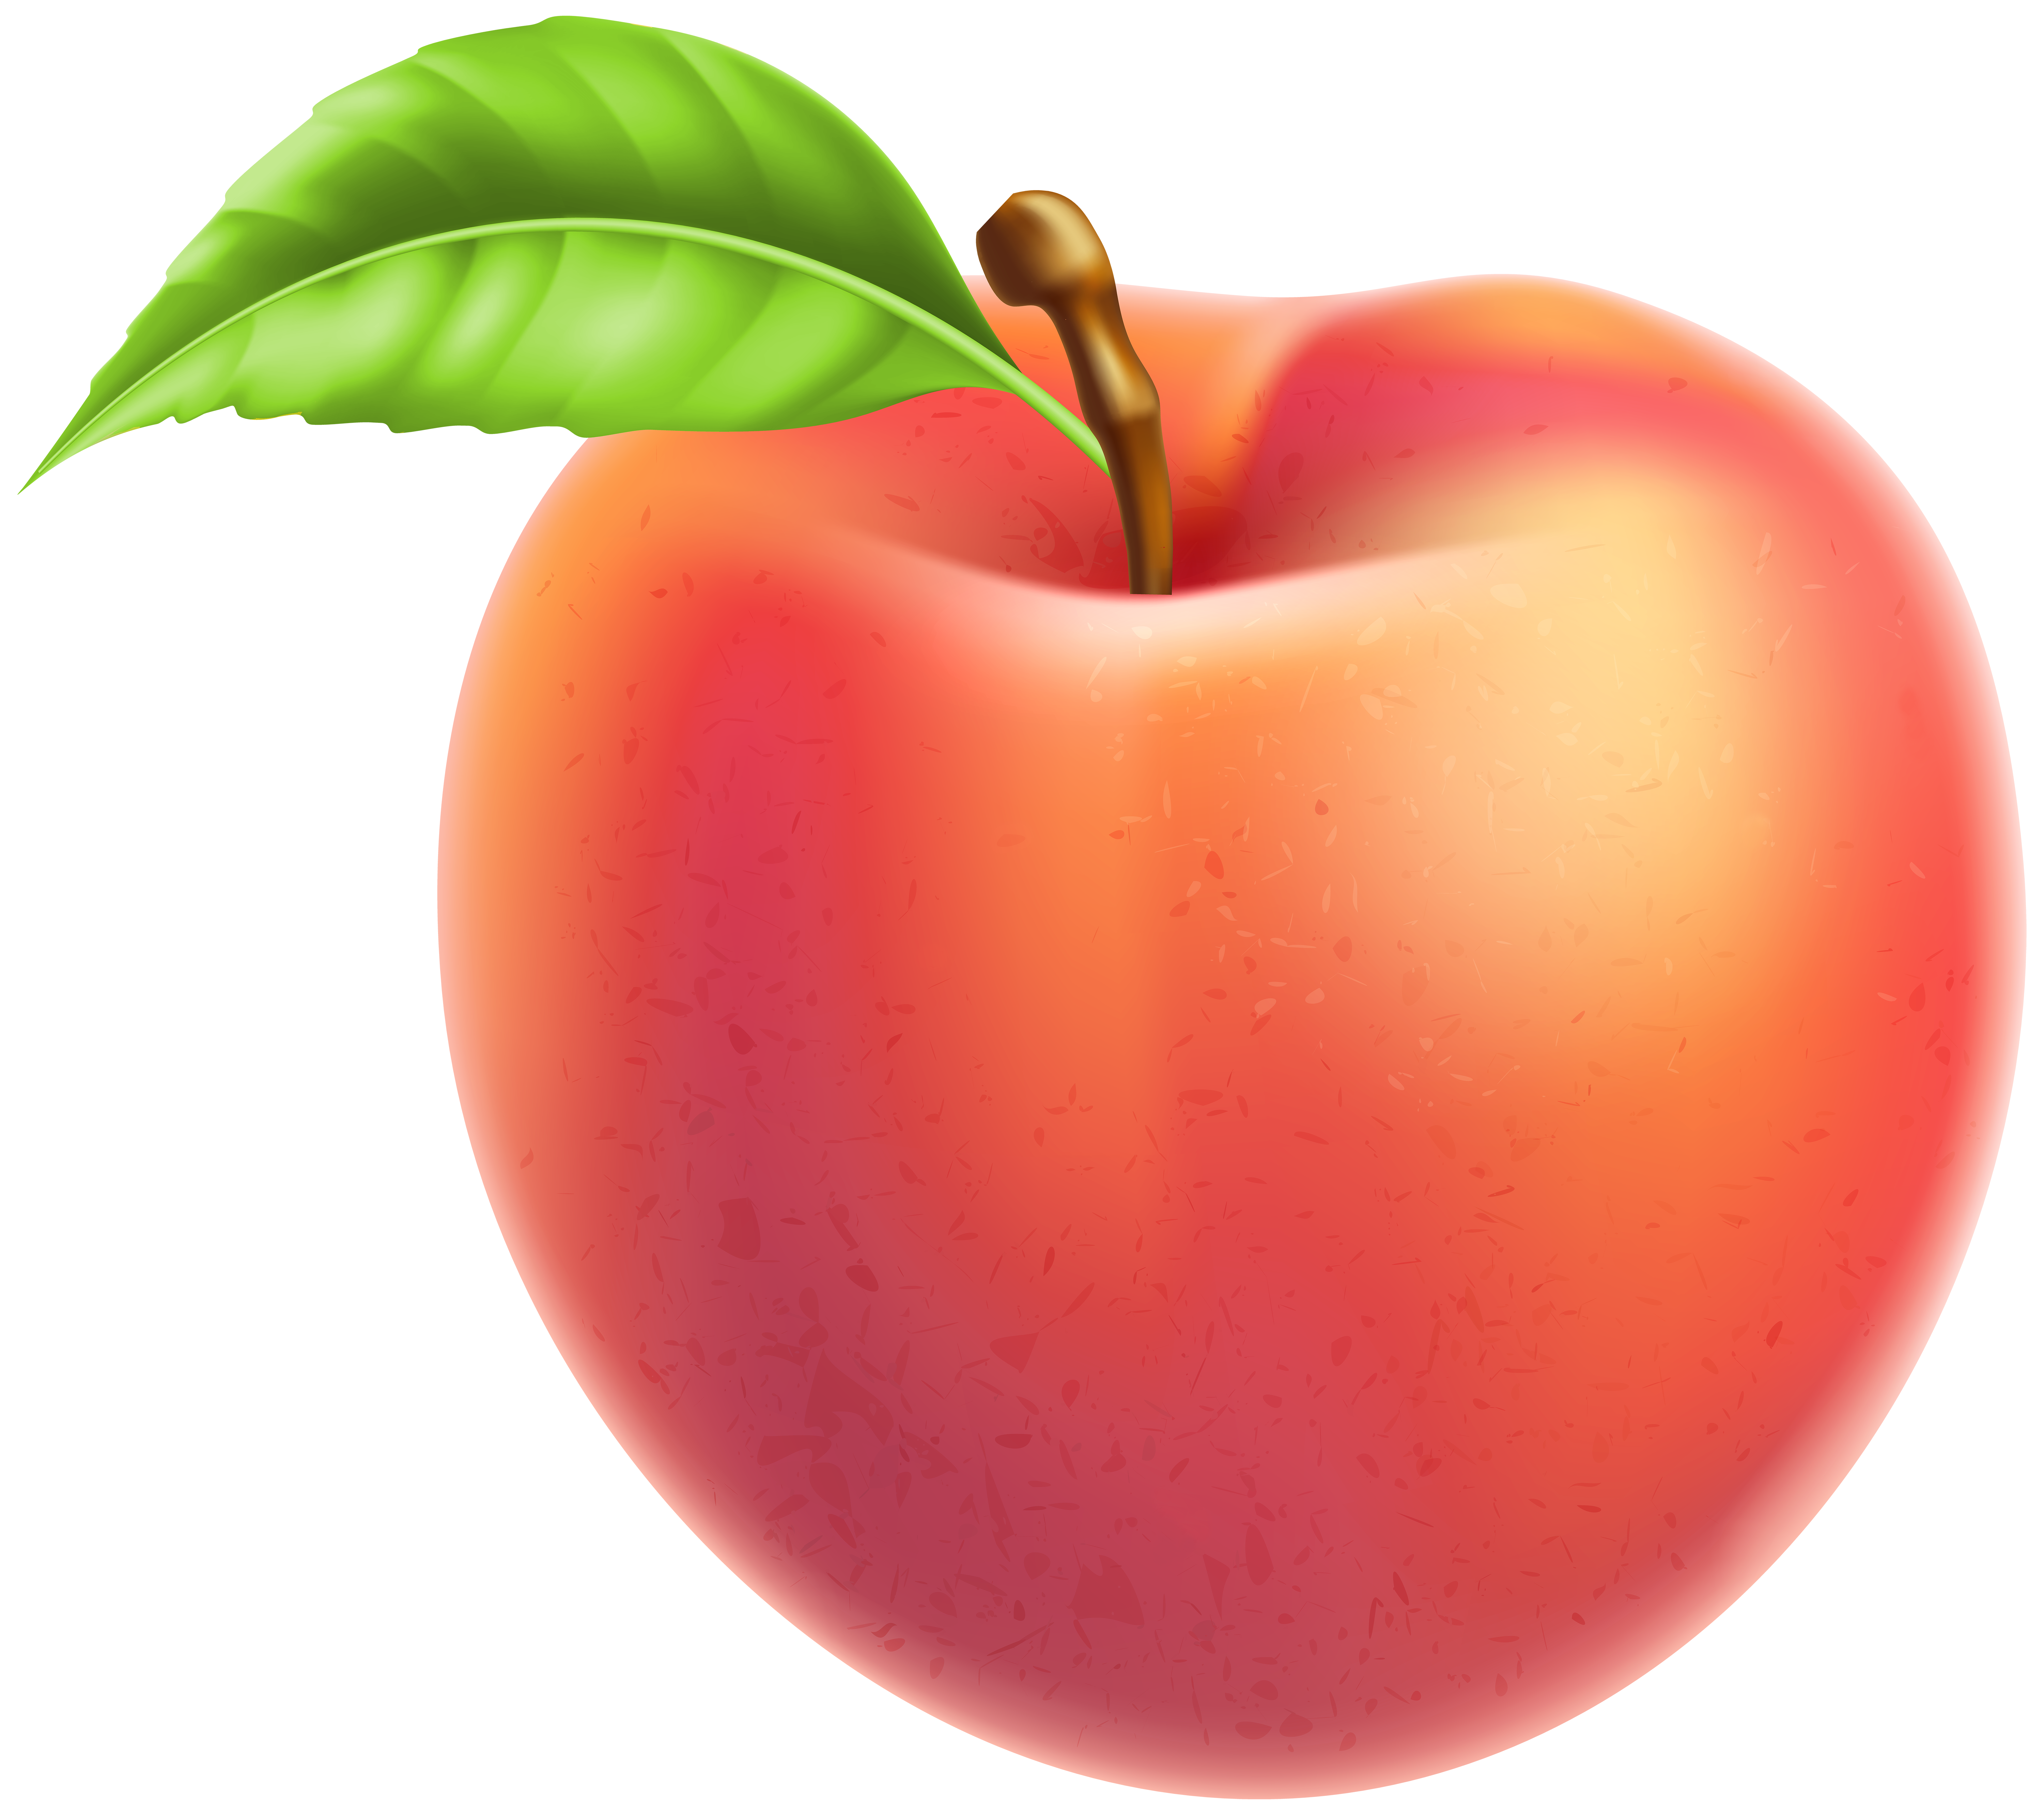 Peach clipart peach fruit. Png gallery yopriceville high